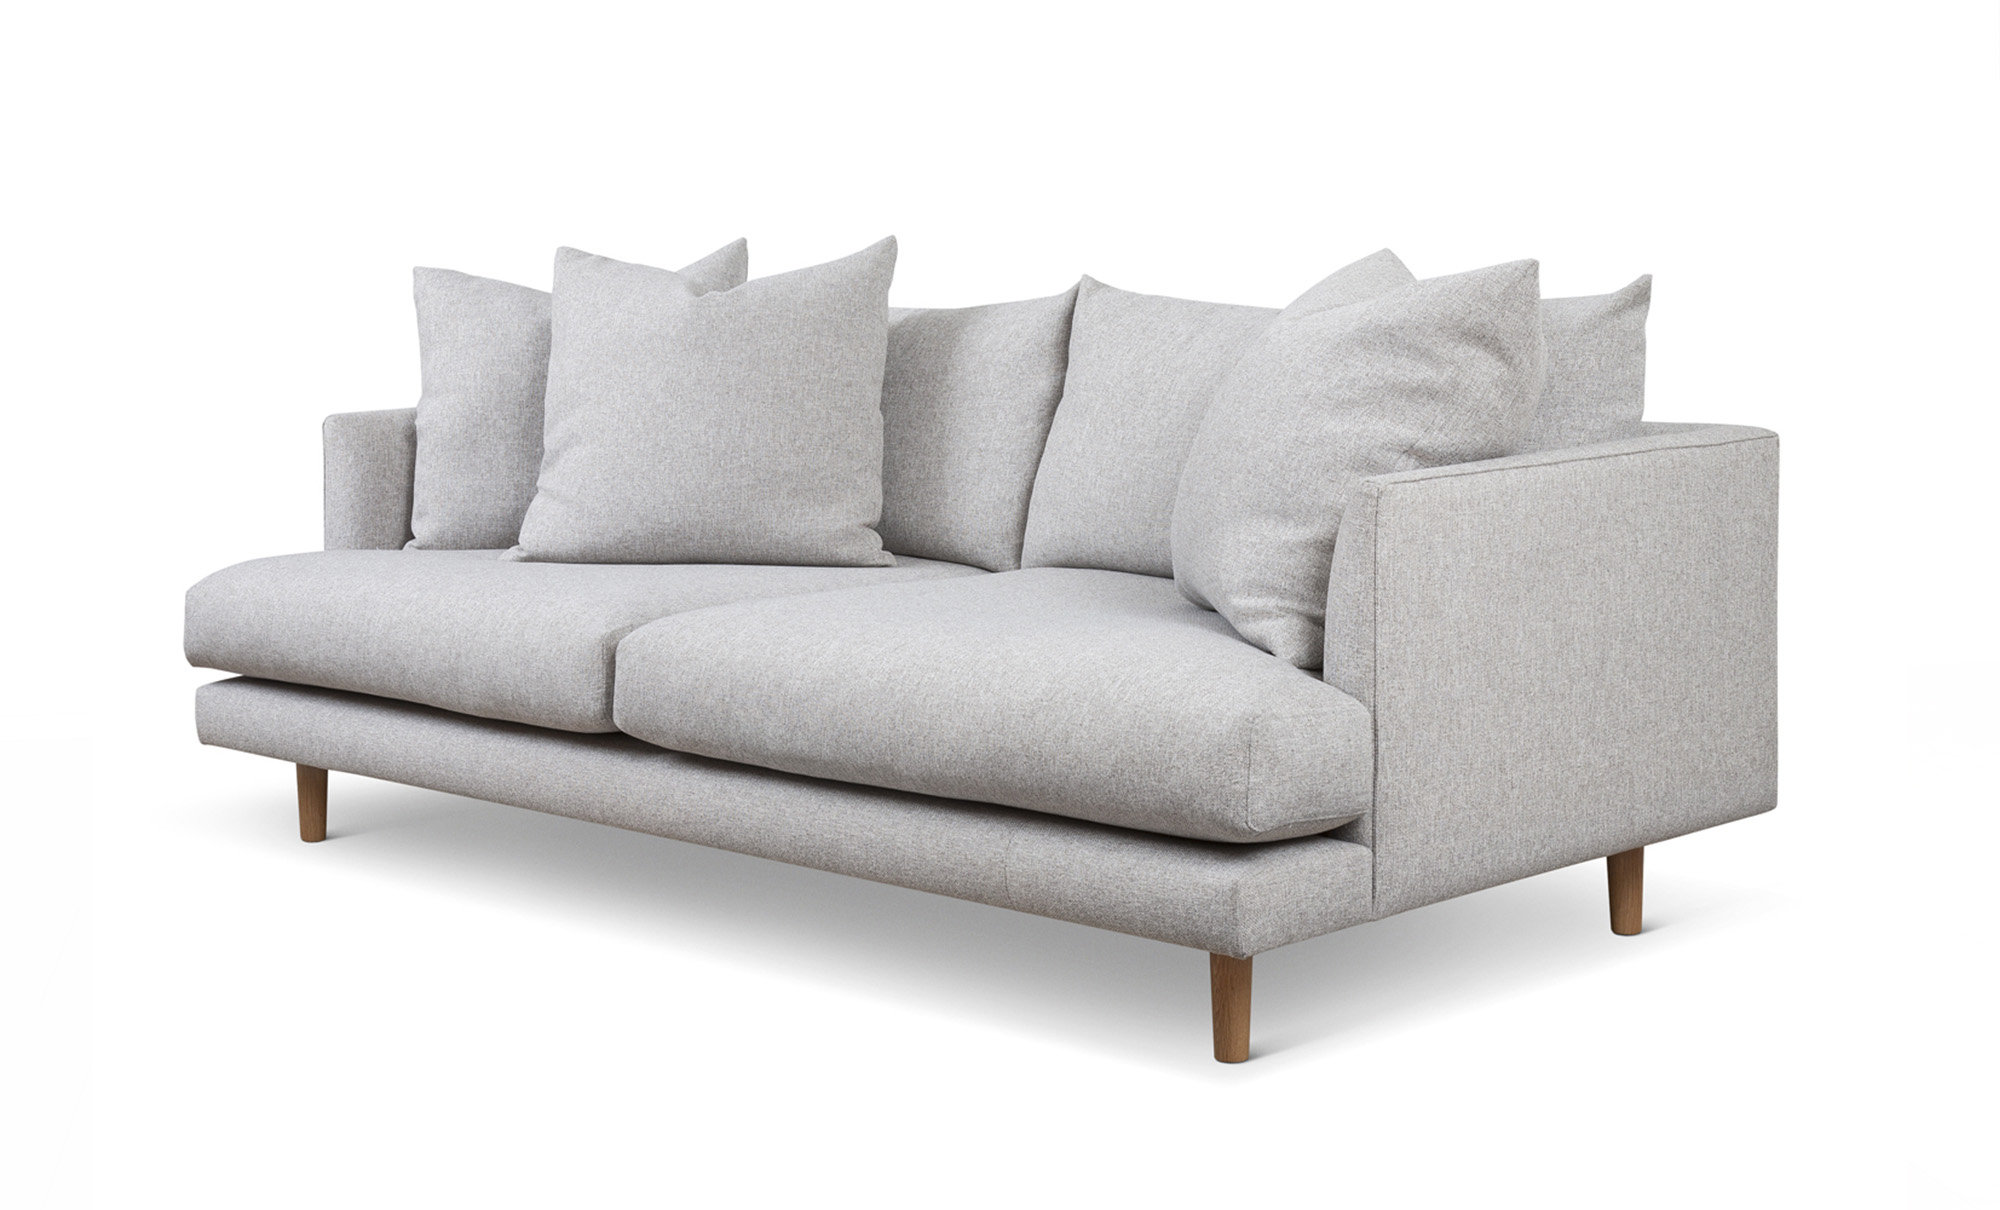 Couches And Sofas Frankie Deep Sofas Fanuli Furniture